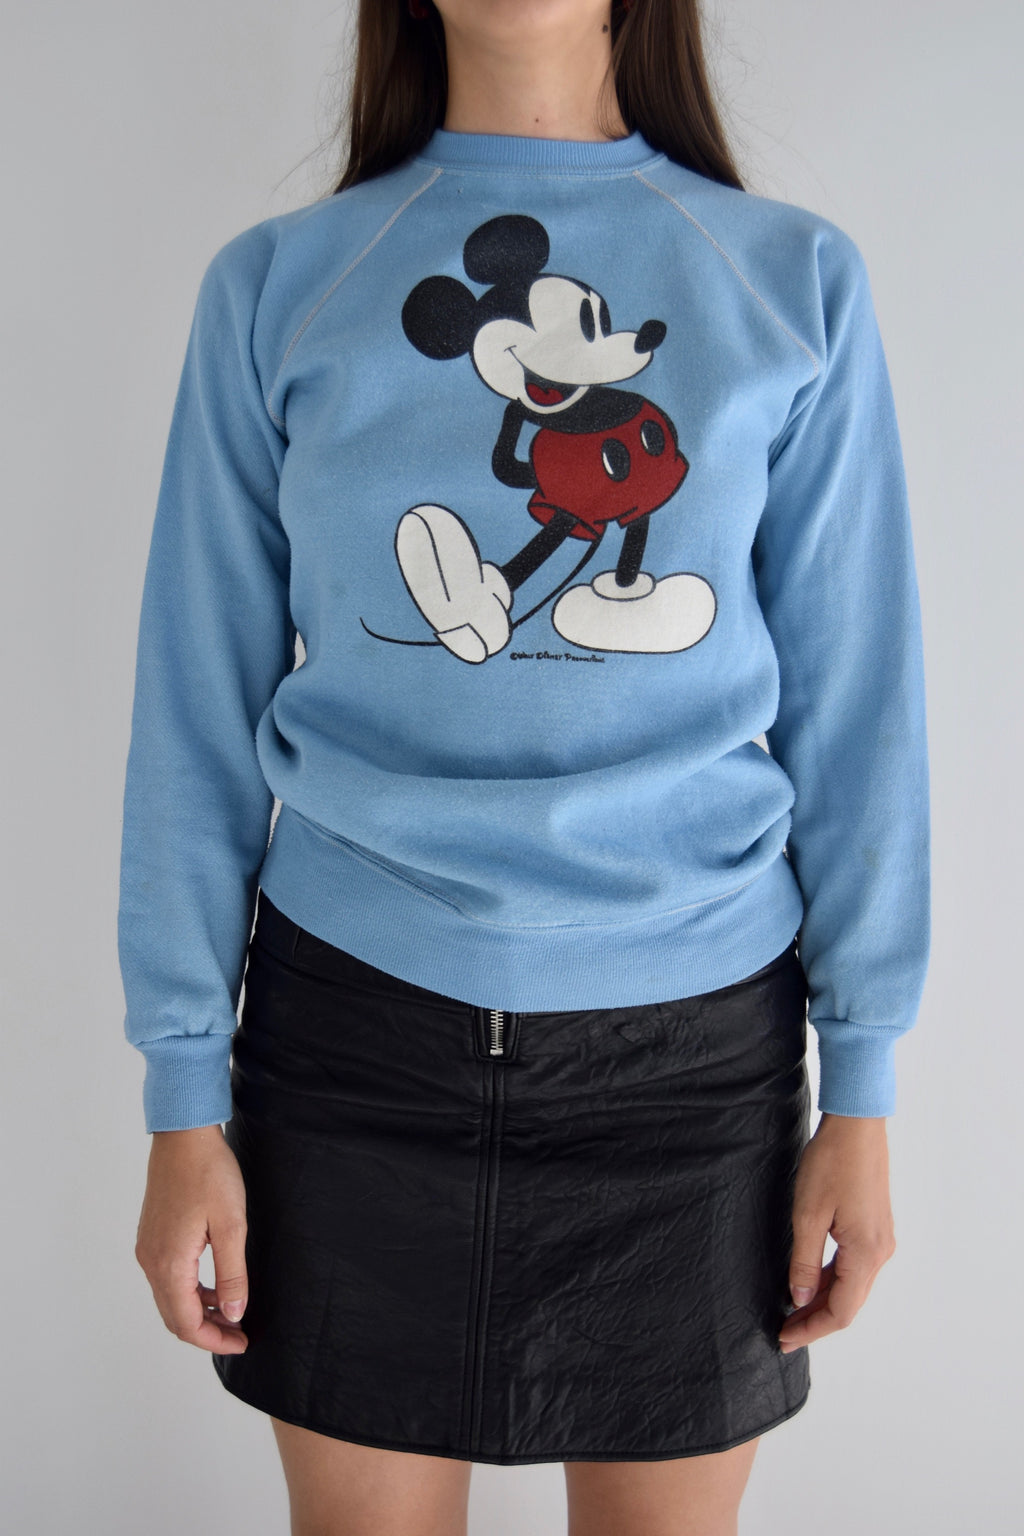 Vintage Mickey Mouse Powder Blue Crew Neck Sweatshirt